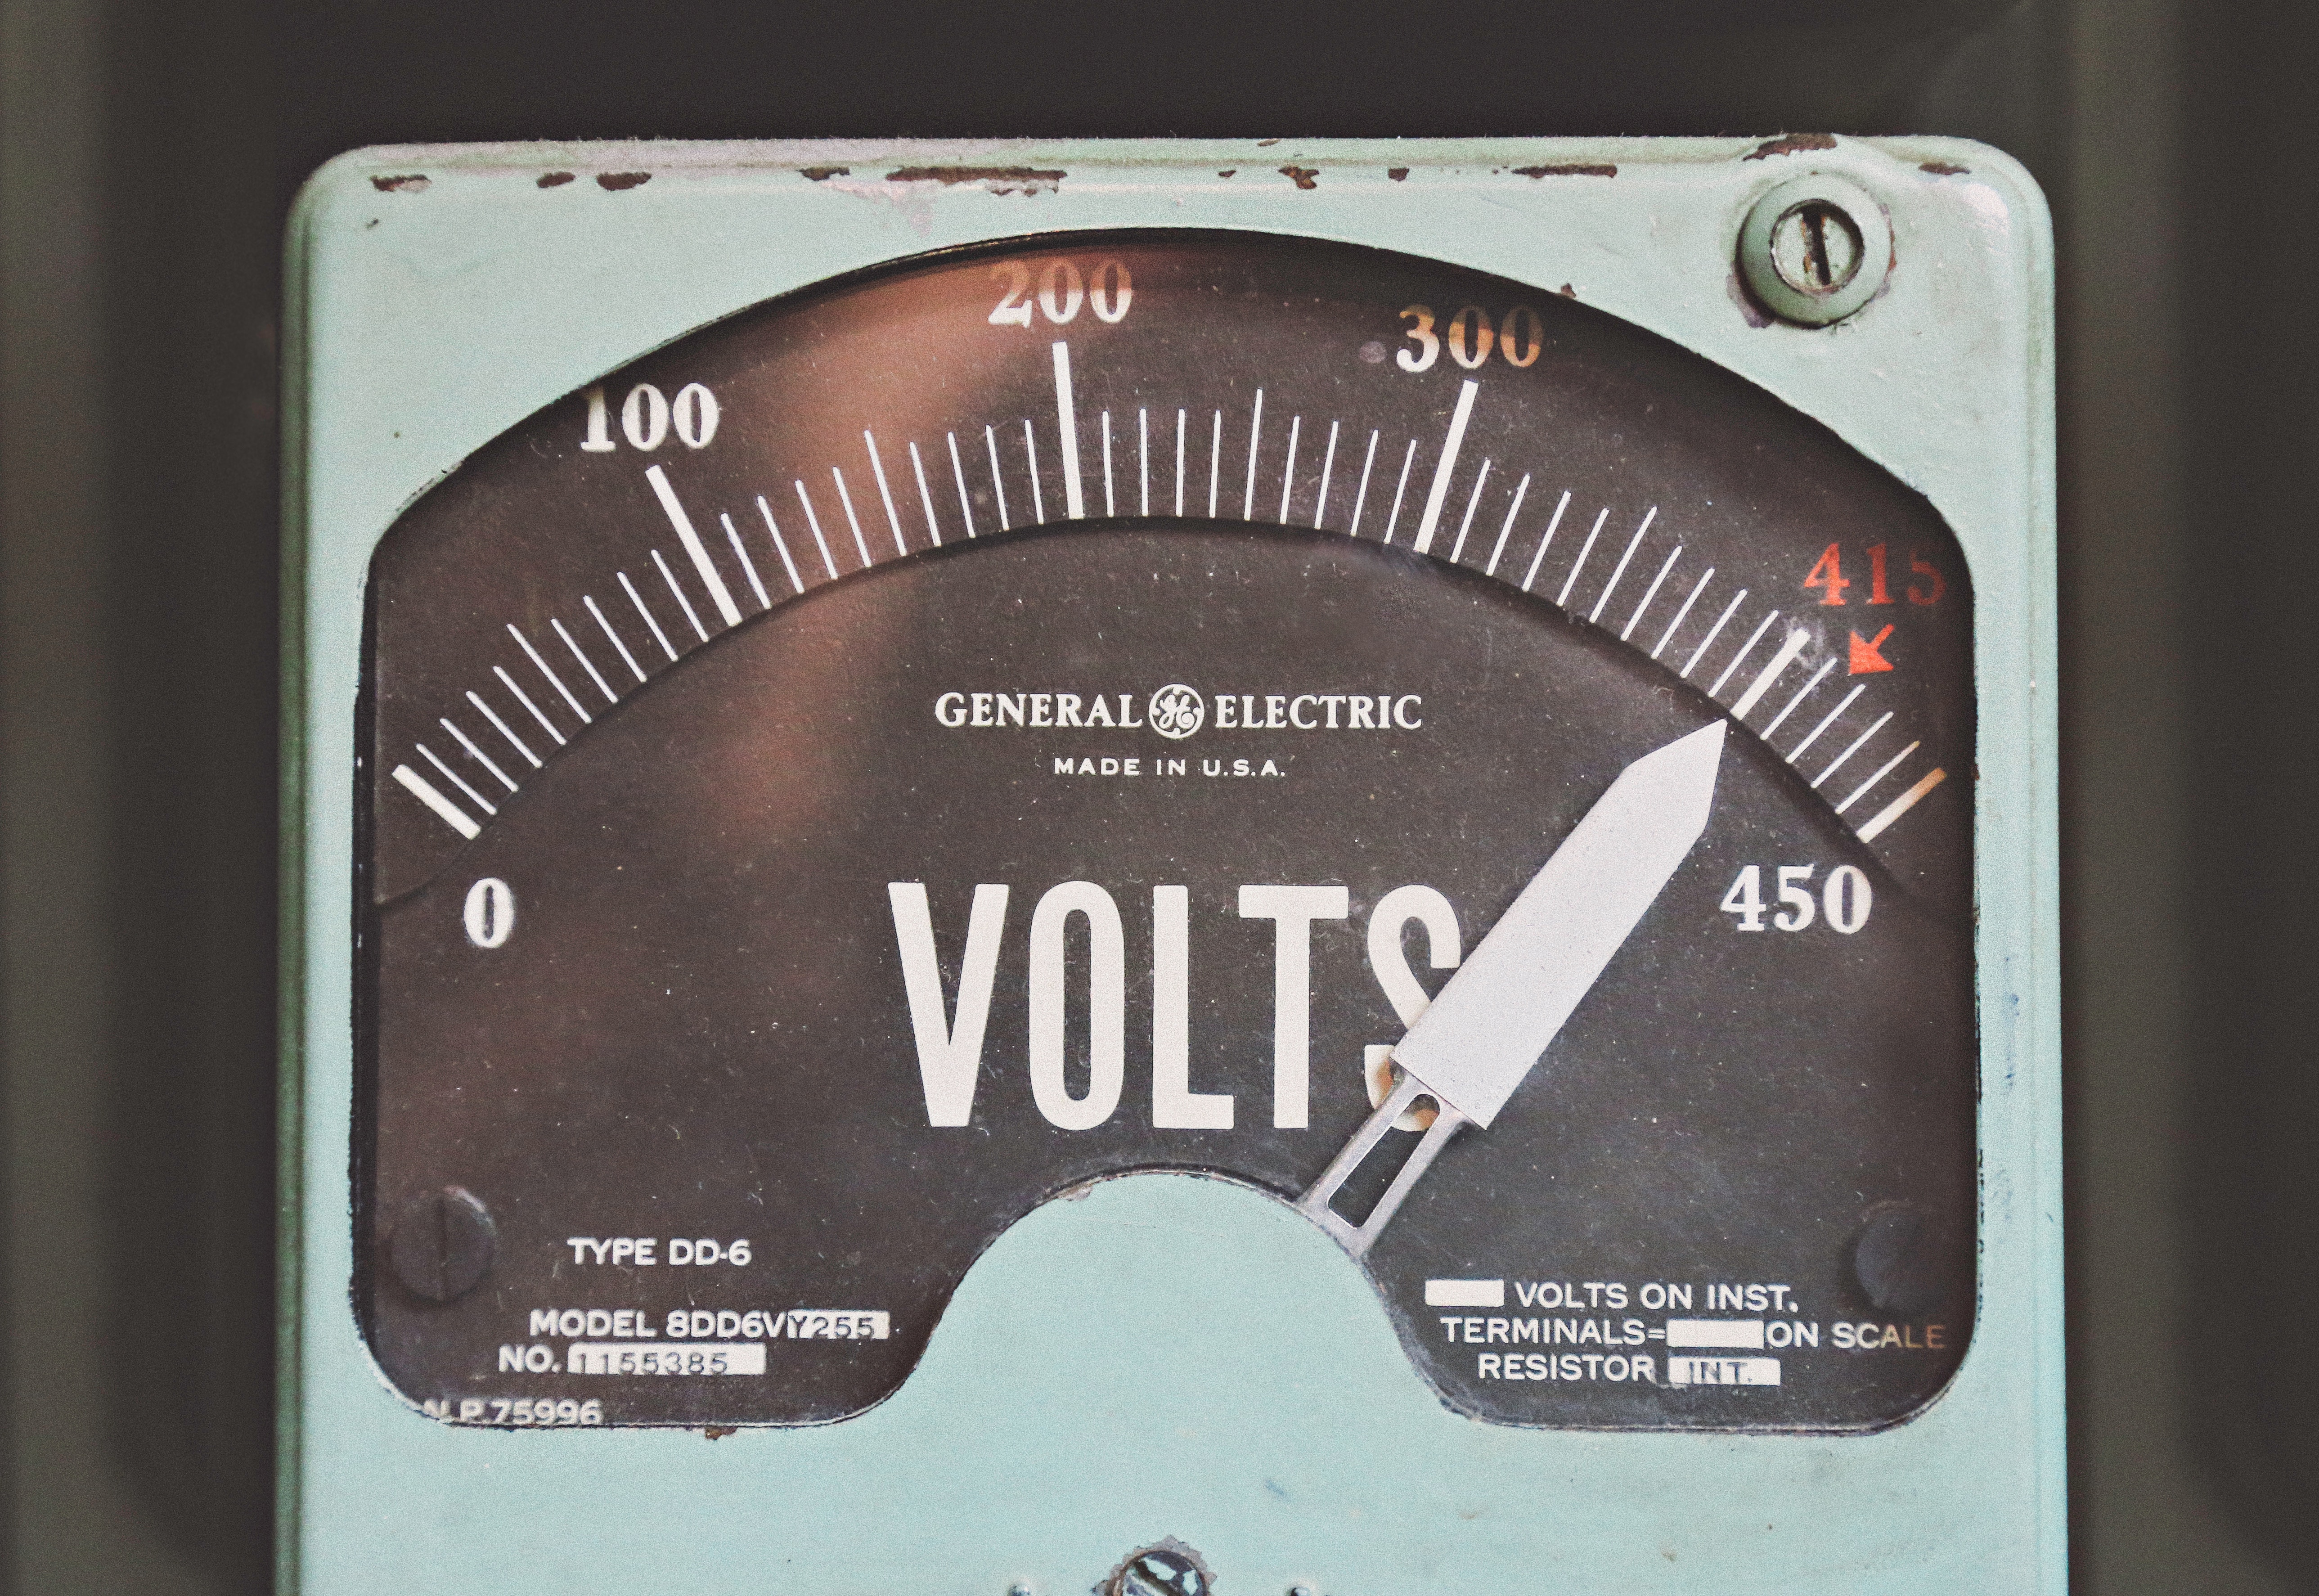 An old GE voltage meter displaying a high voltage reading